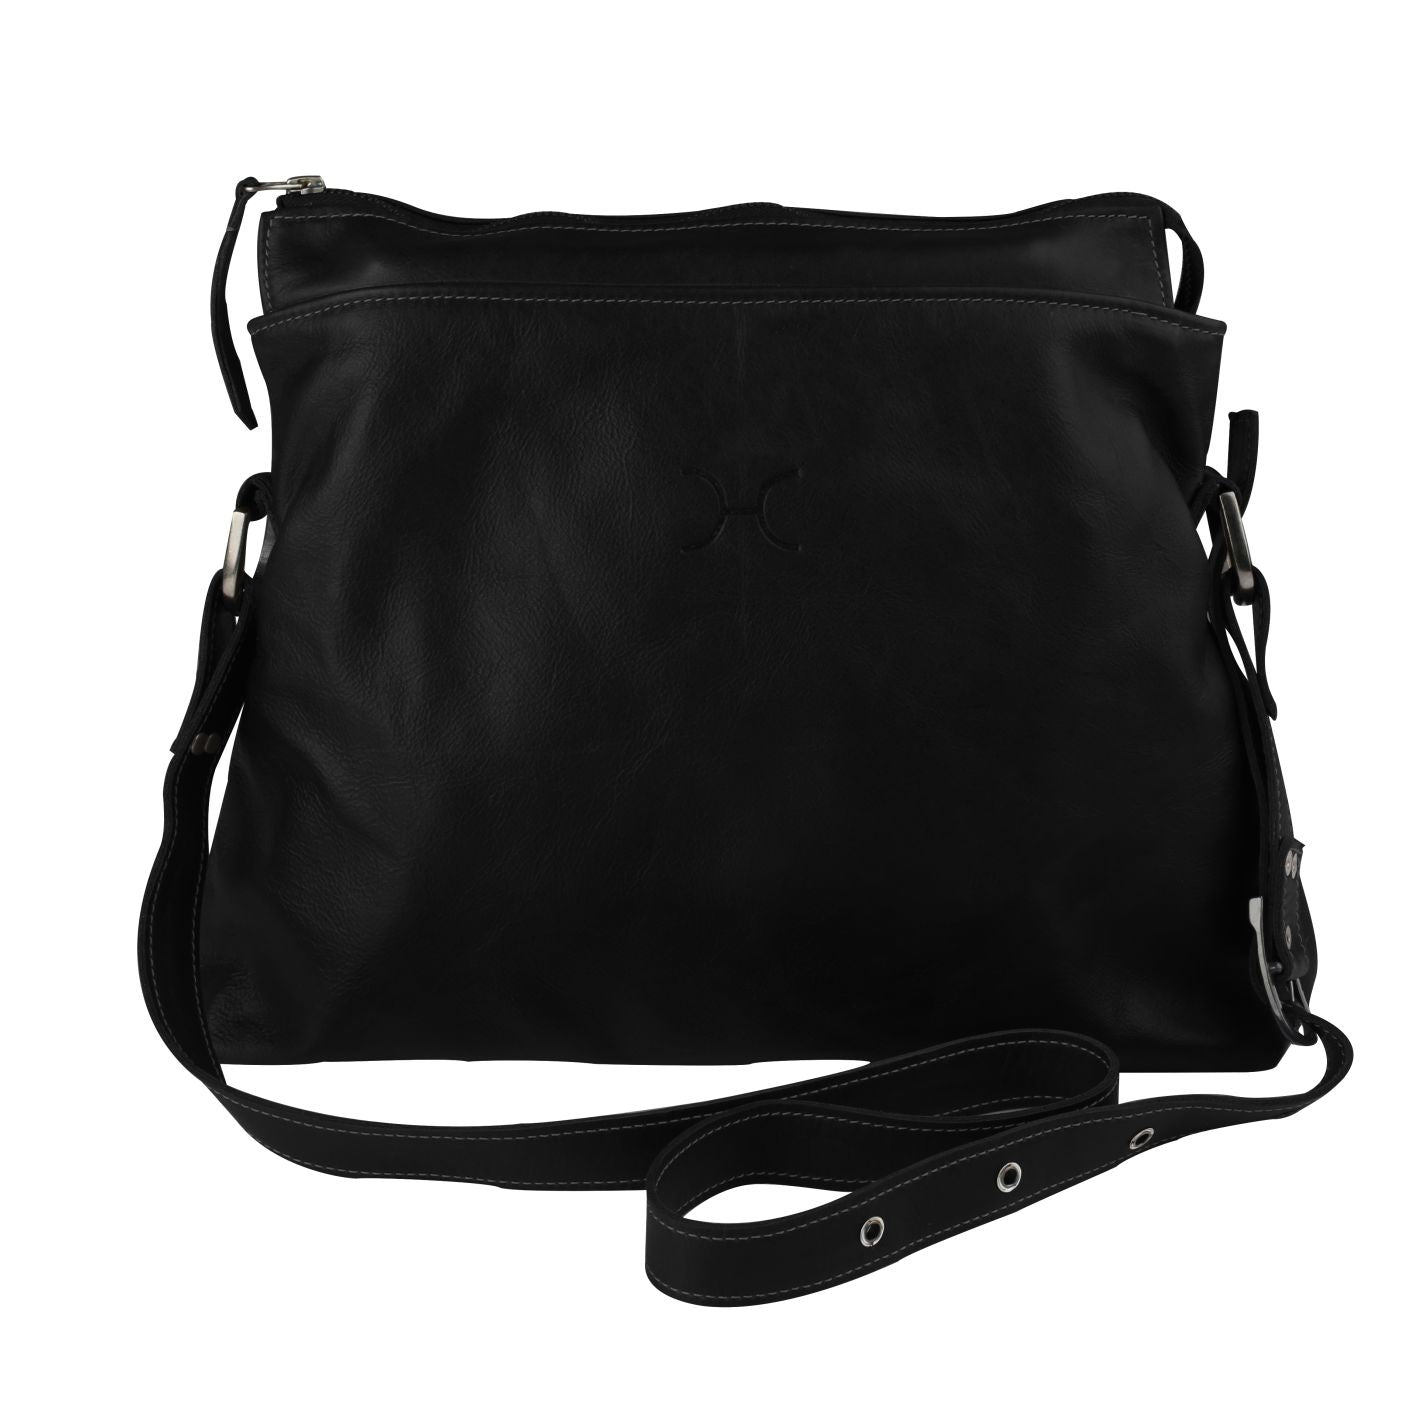 Thandana Messenger Boho Sling Bag - Black - Zufrique Boutique